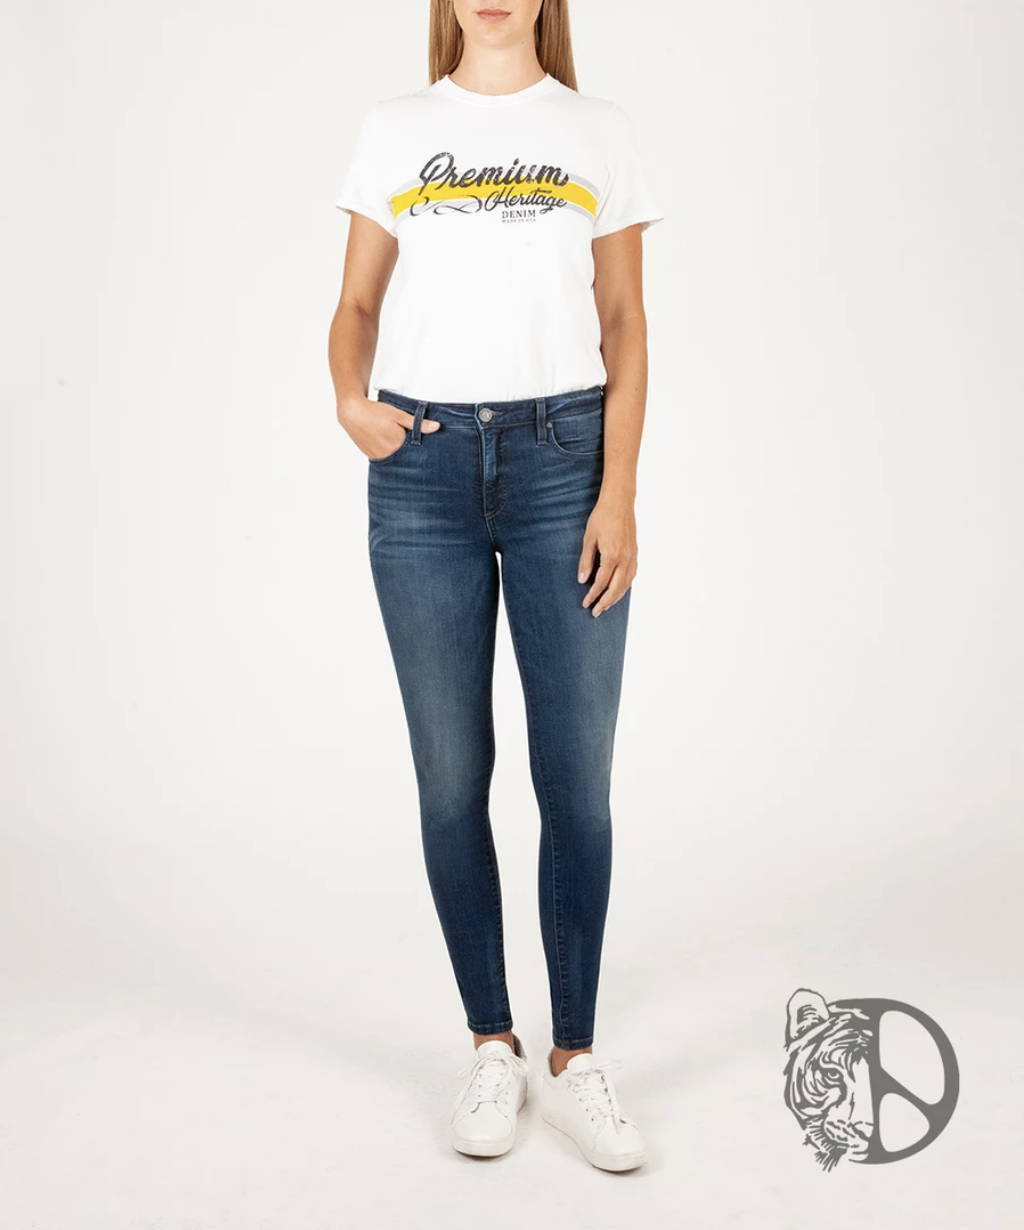 Premium Heritage Mia Skinny Inspired by Peace for Animals with Katie Cleary